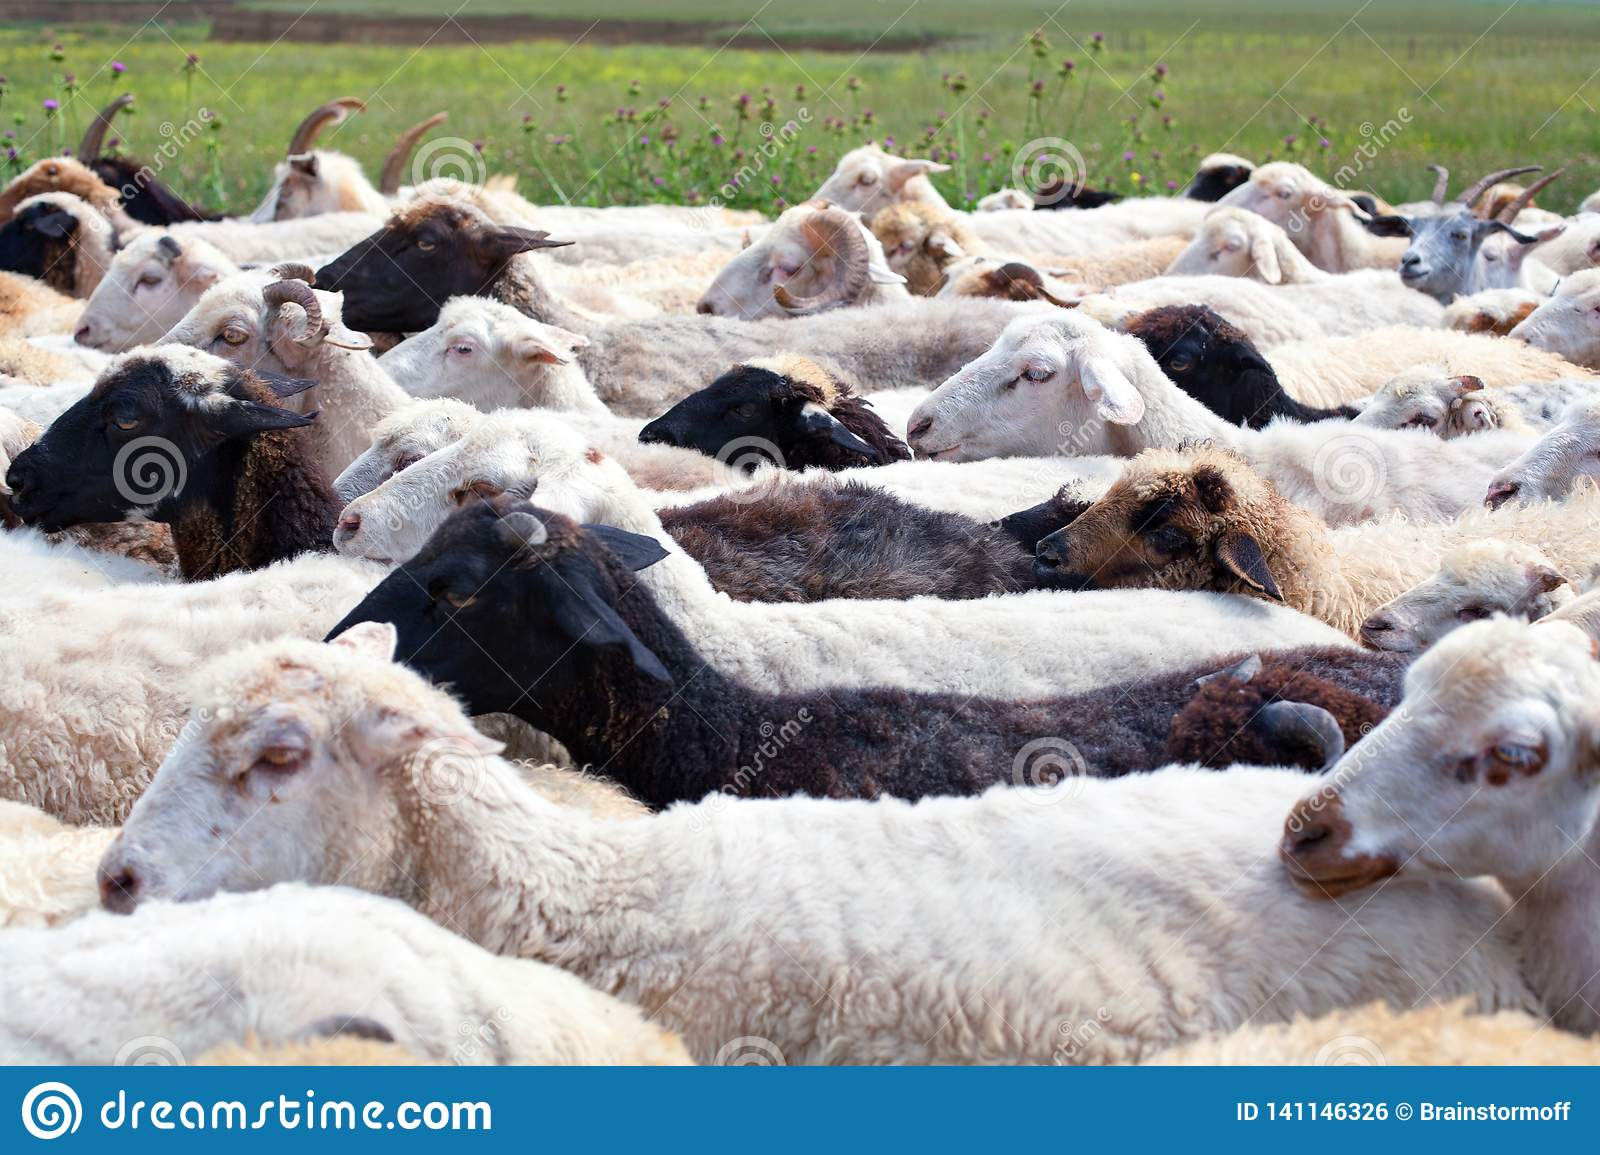 Large flock of white and black sheeps walking on the road on the green field background closeup